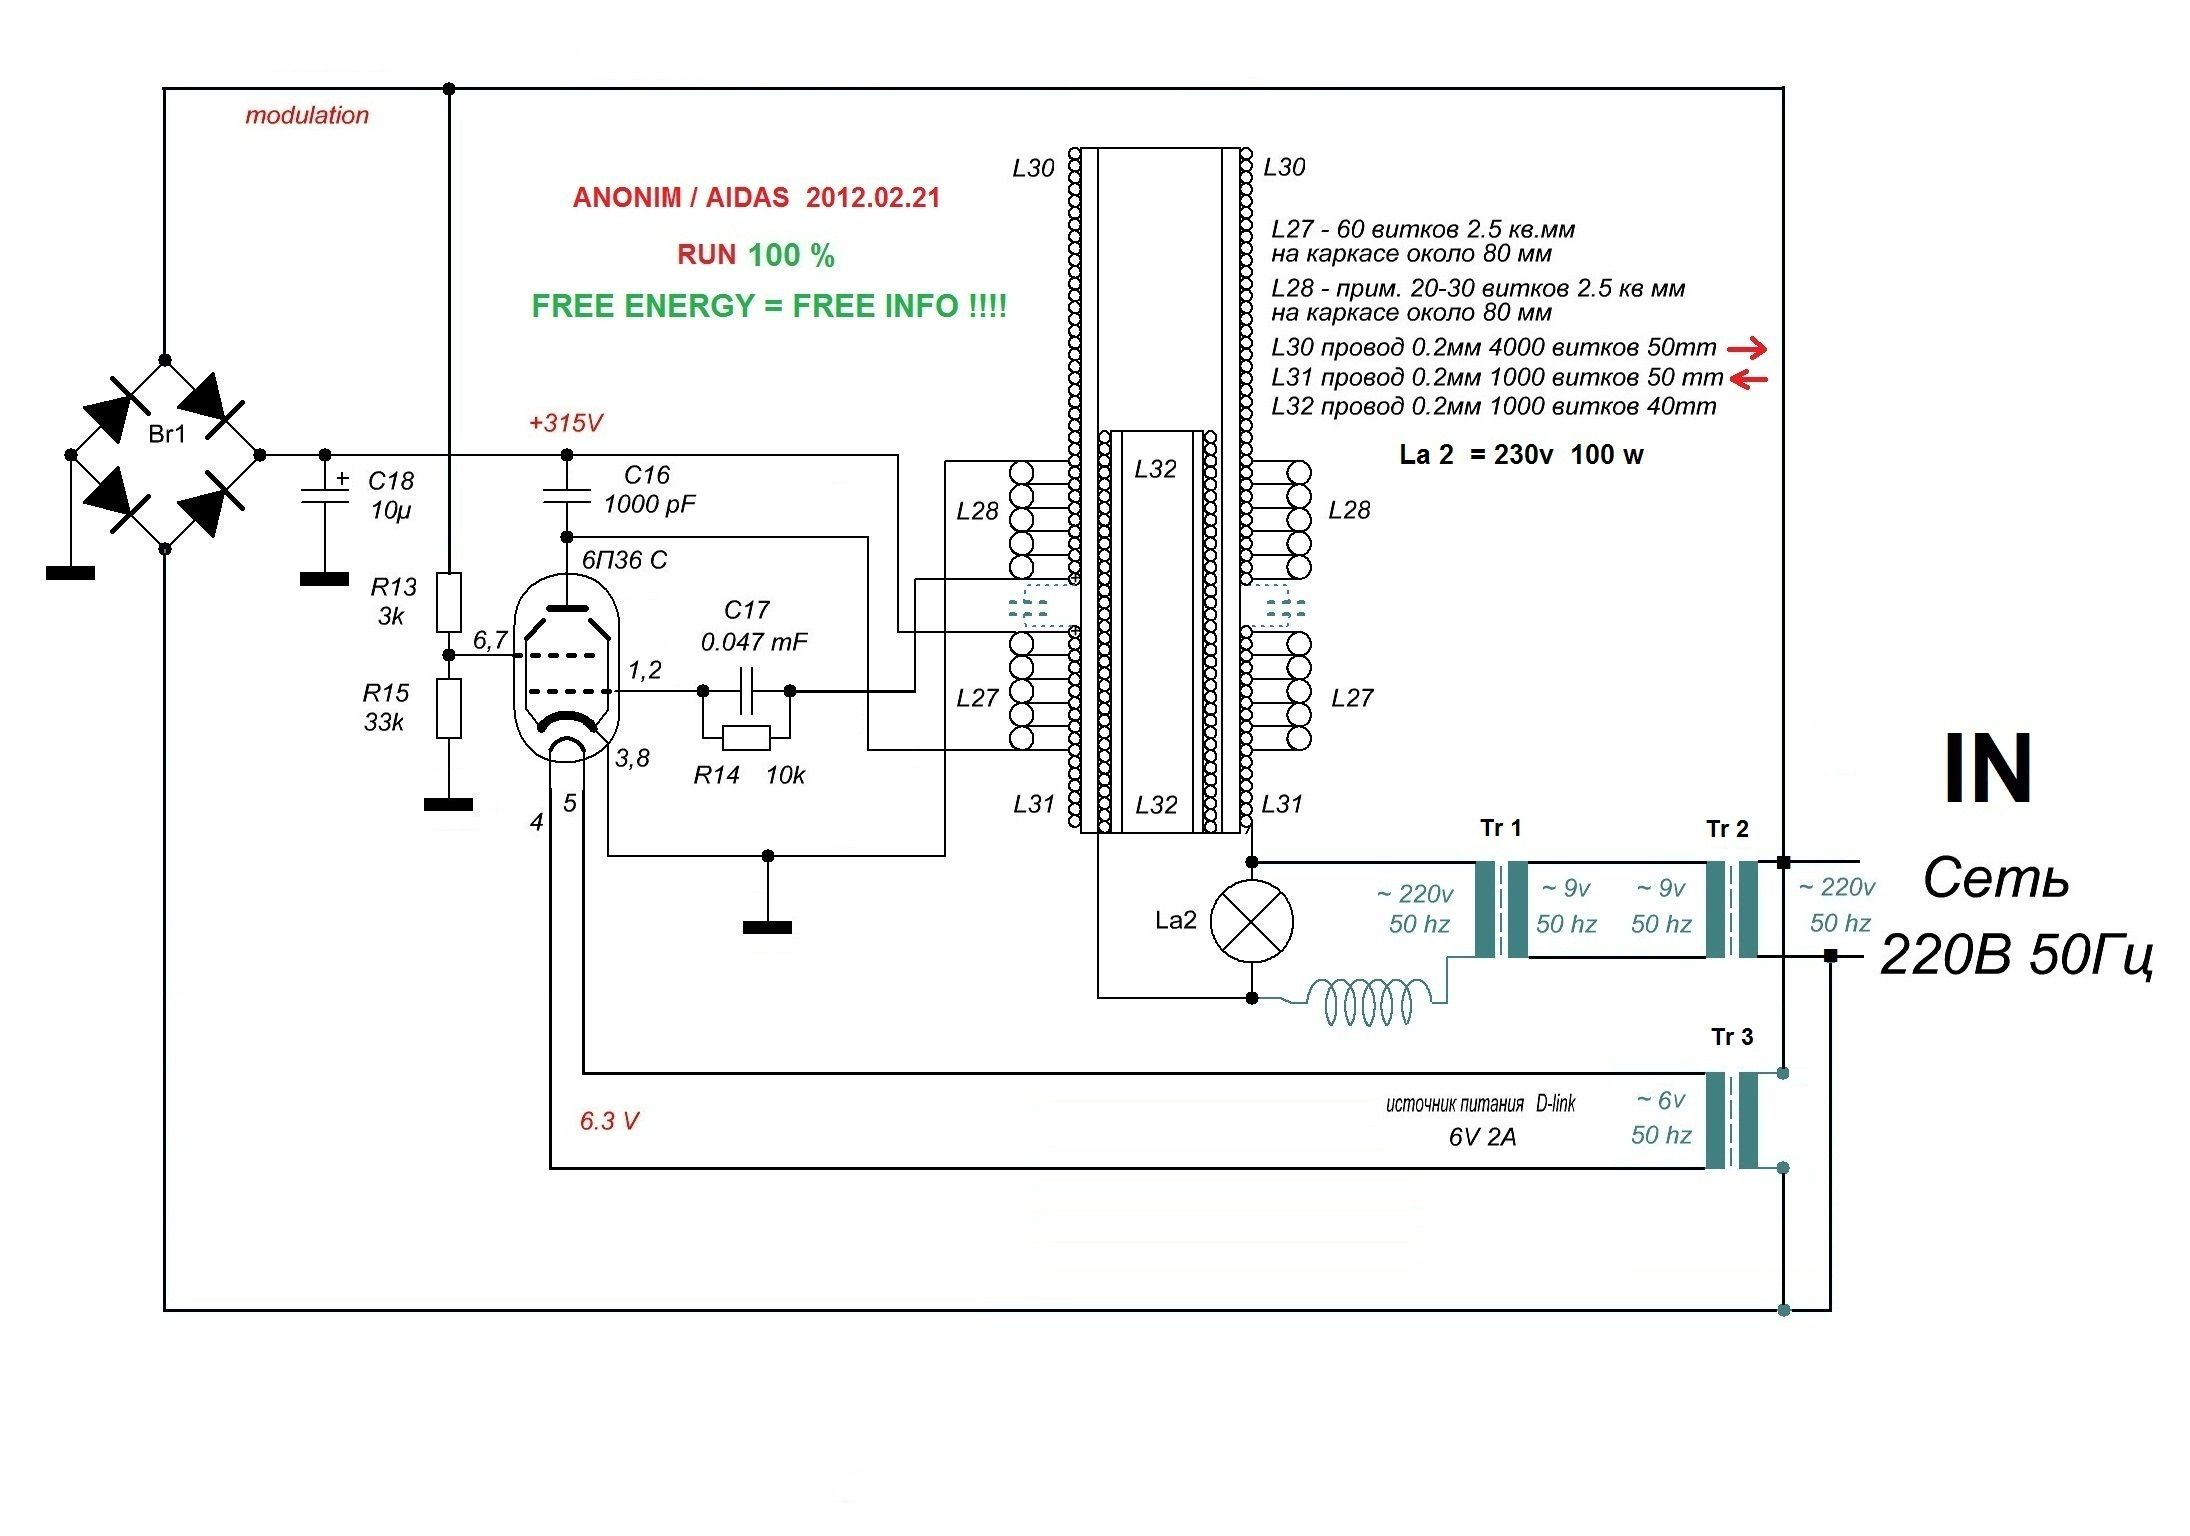 small resolution of re selfrunning free energy devices up to 5 kw from tariel kapanadze free energy kapanadze free energy generator schematics